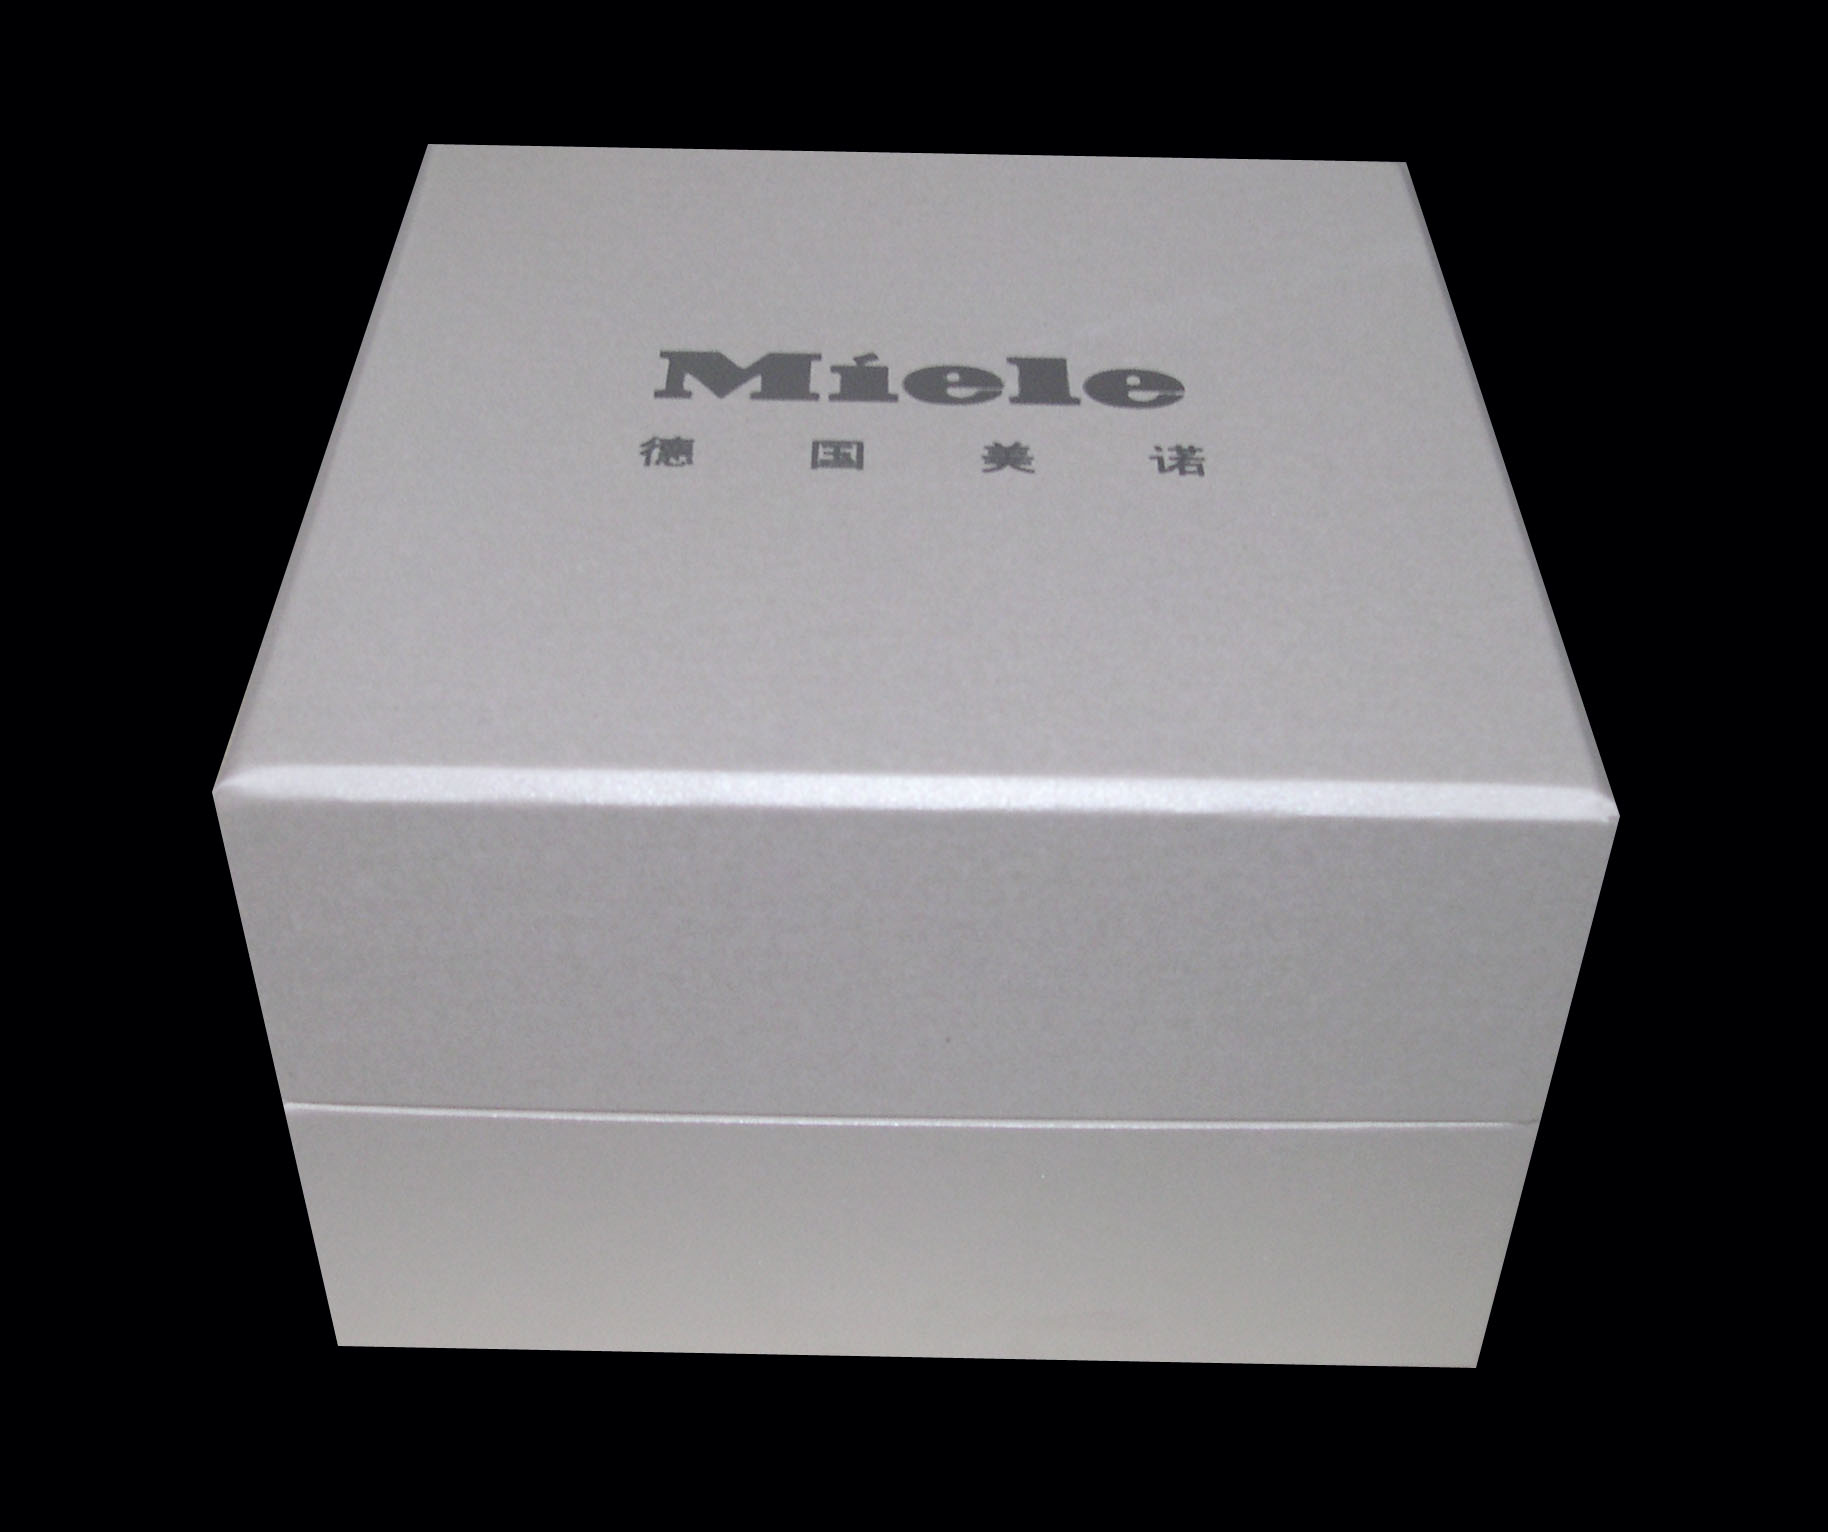 Rectangular flower gift packaging gift box customized wholesale flowers candy boxes boxes welcome wholesale custom